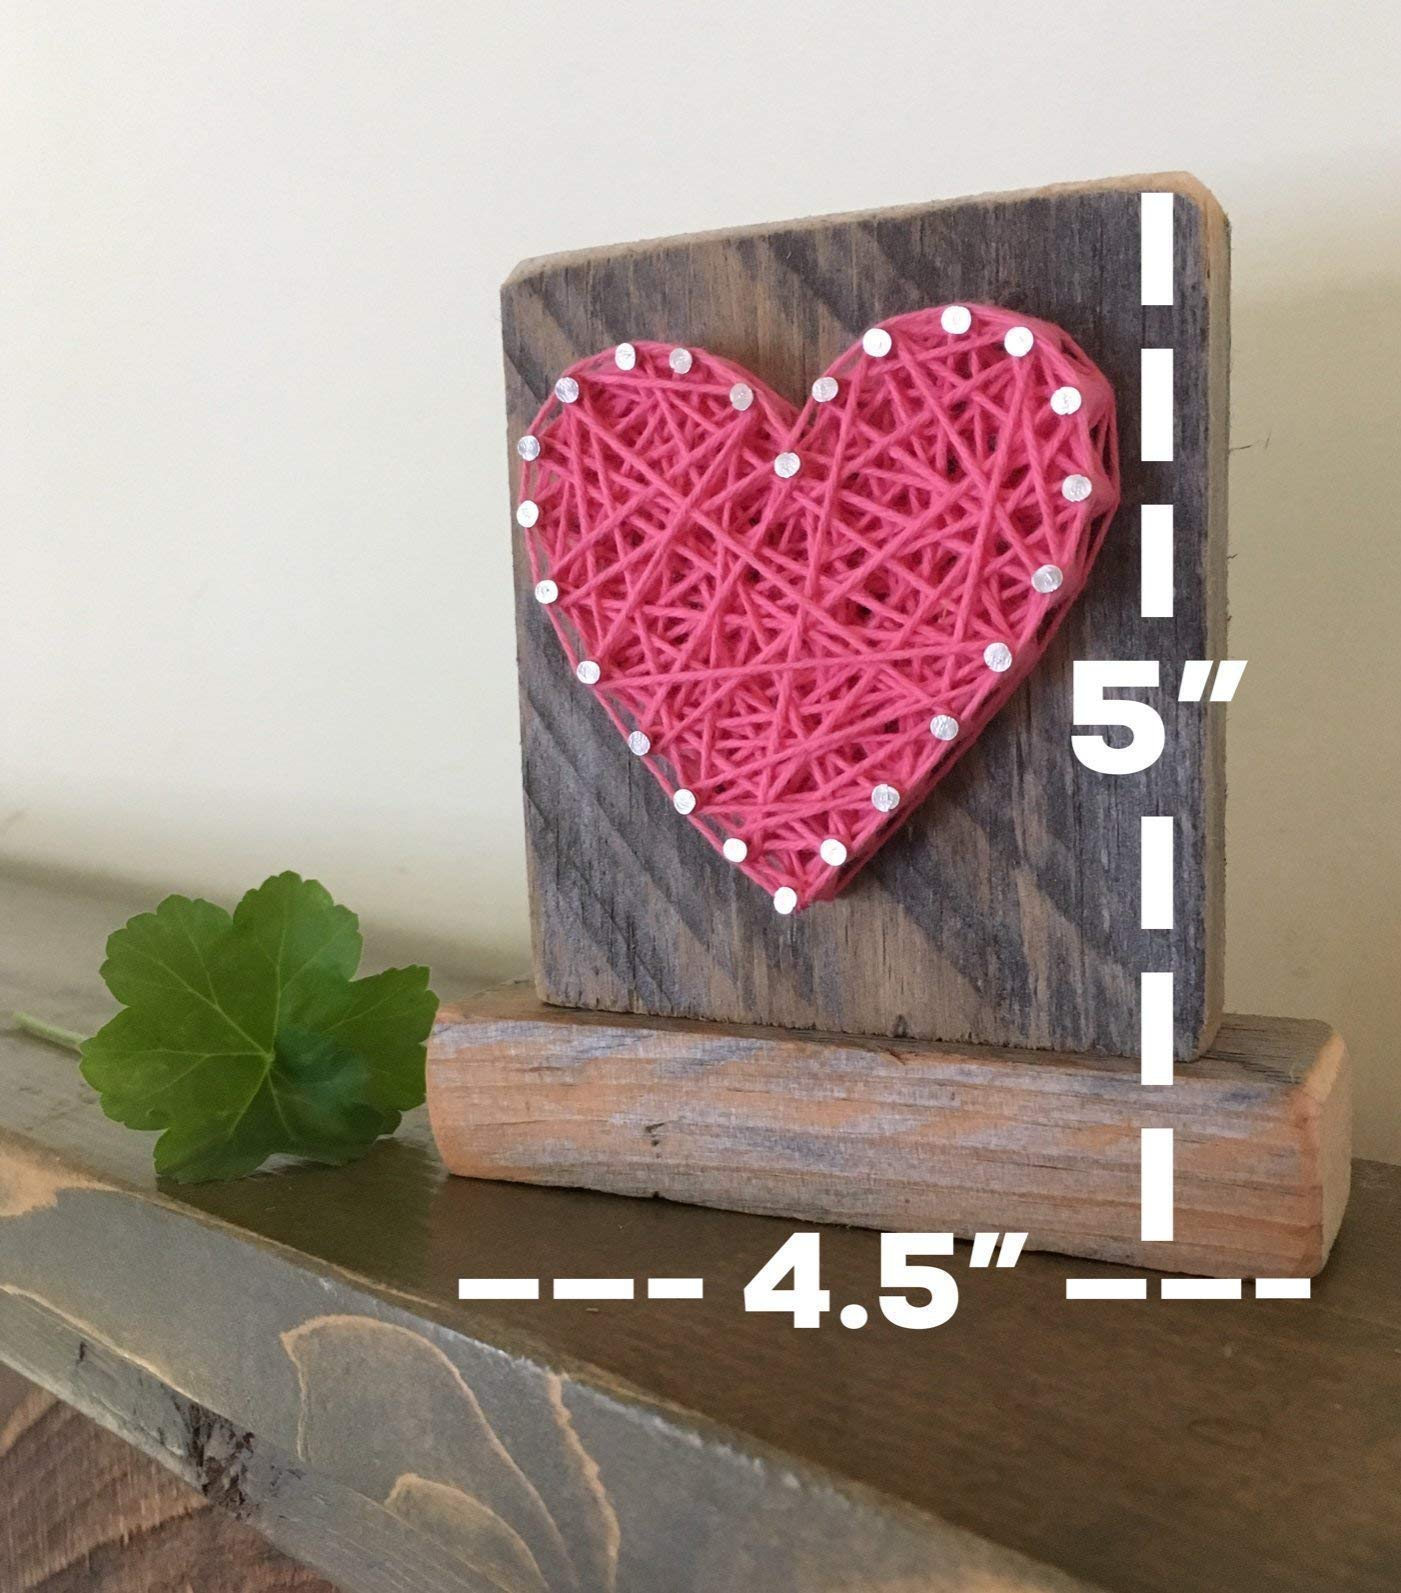 Sweet & small freestanding wooden pink string art heart sign. Perfect for Mother's Day, home accents, Wedding favors, Anniversary gifts, nursery decoration and just because gifts by Nail it Art. by Nail it Art (Image #2)